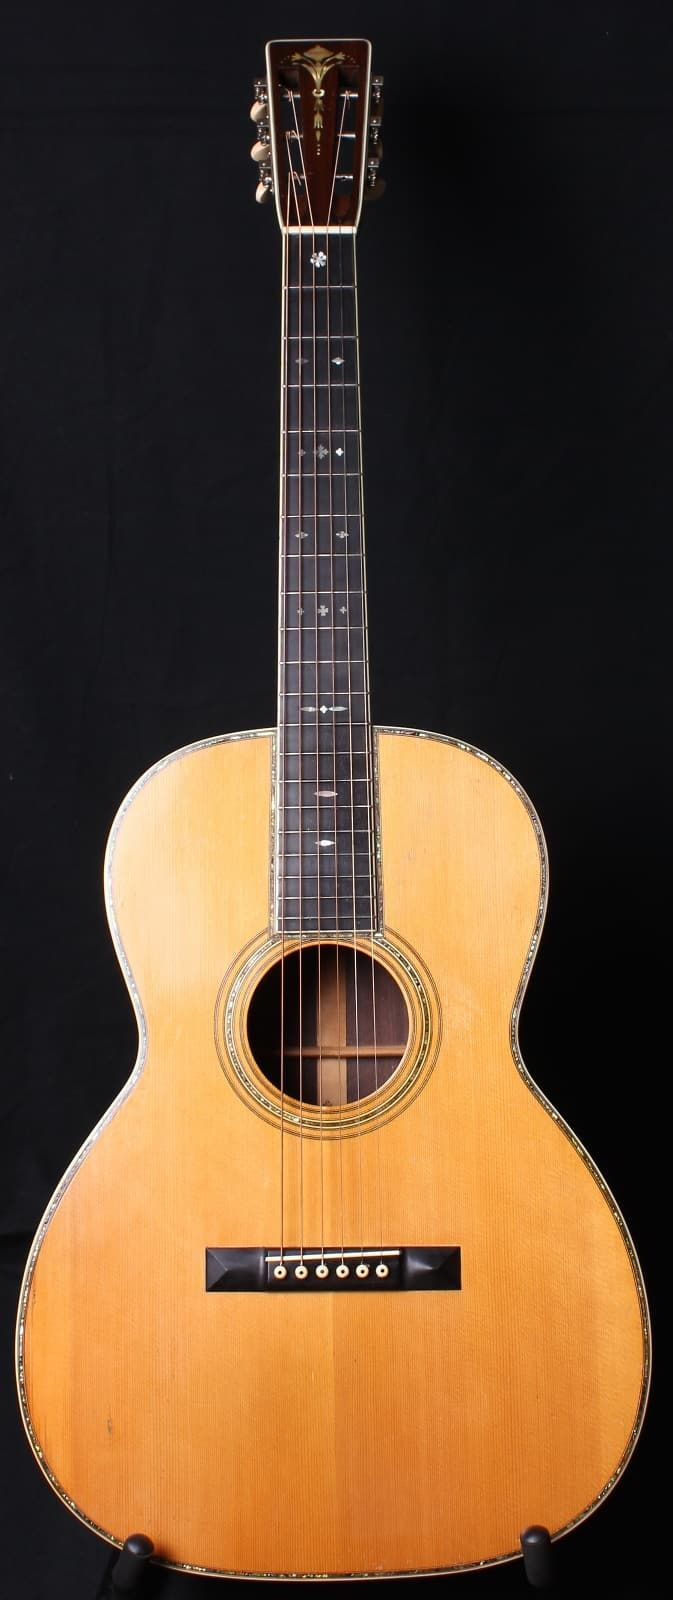 Up for sale today is a crazy rare and highly collectable 1928 Martin 000-45. This guitar features an Adirondack Spruce top, Brazilian Rosewood back and sides, torch headstock inlay and pearl around every nook and cranny you can see. The guitar is in very good, all original condition with the ex...